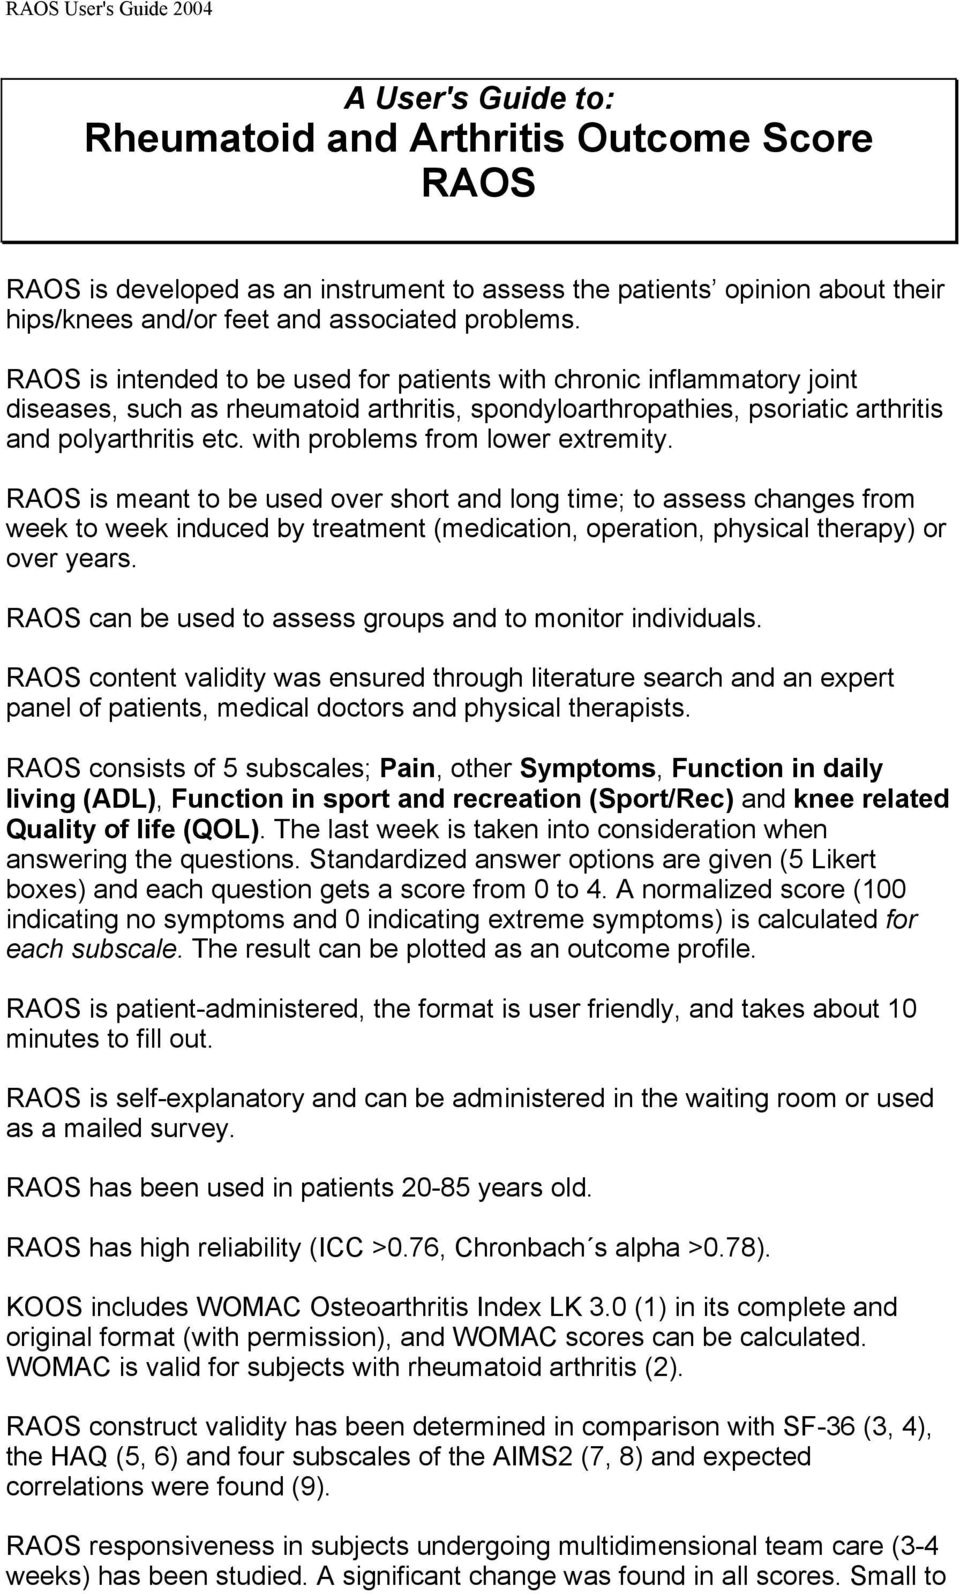 with problems from lower extremity. RAOS is meant to be used over short and long time; to assess changes from week to week induced by treatment (medication, operation, physical therapy) or over years.